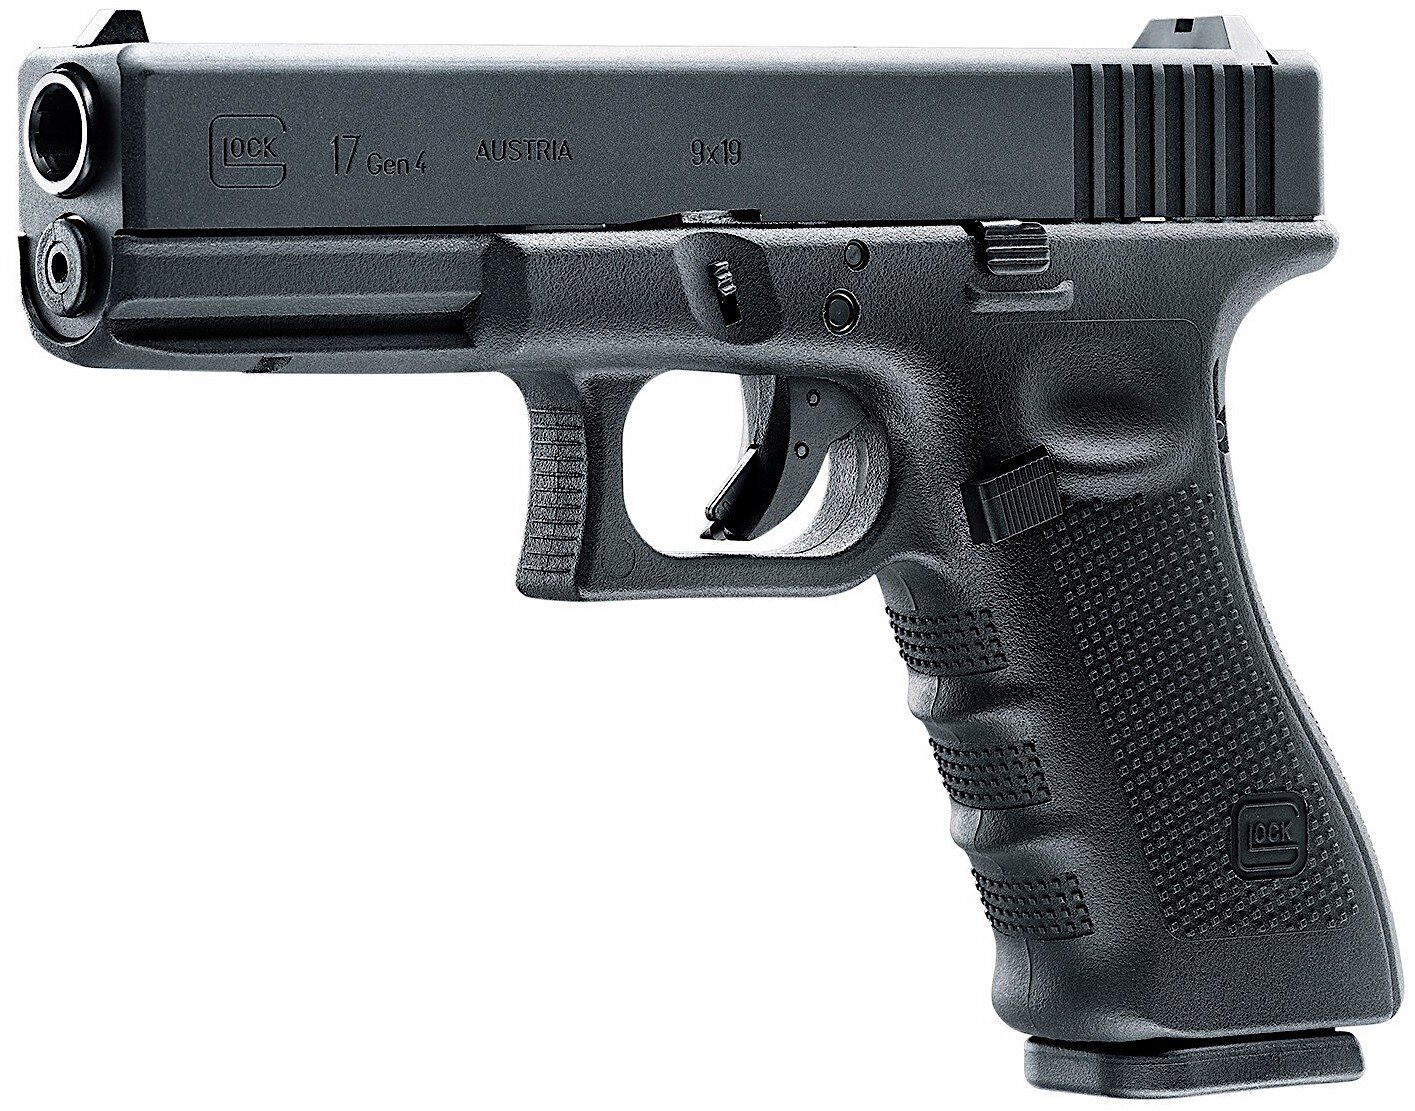 Umarex Glock 17 4th Gen CO2 Blowback BB Pistol Left Side Angle.jpg